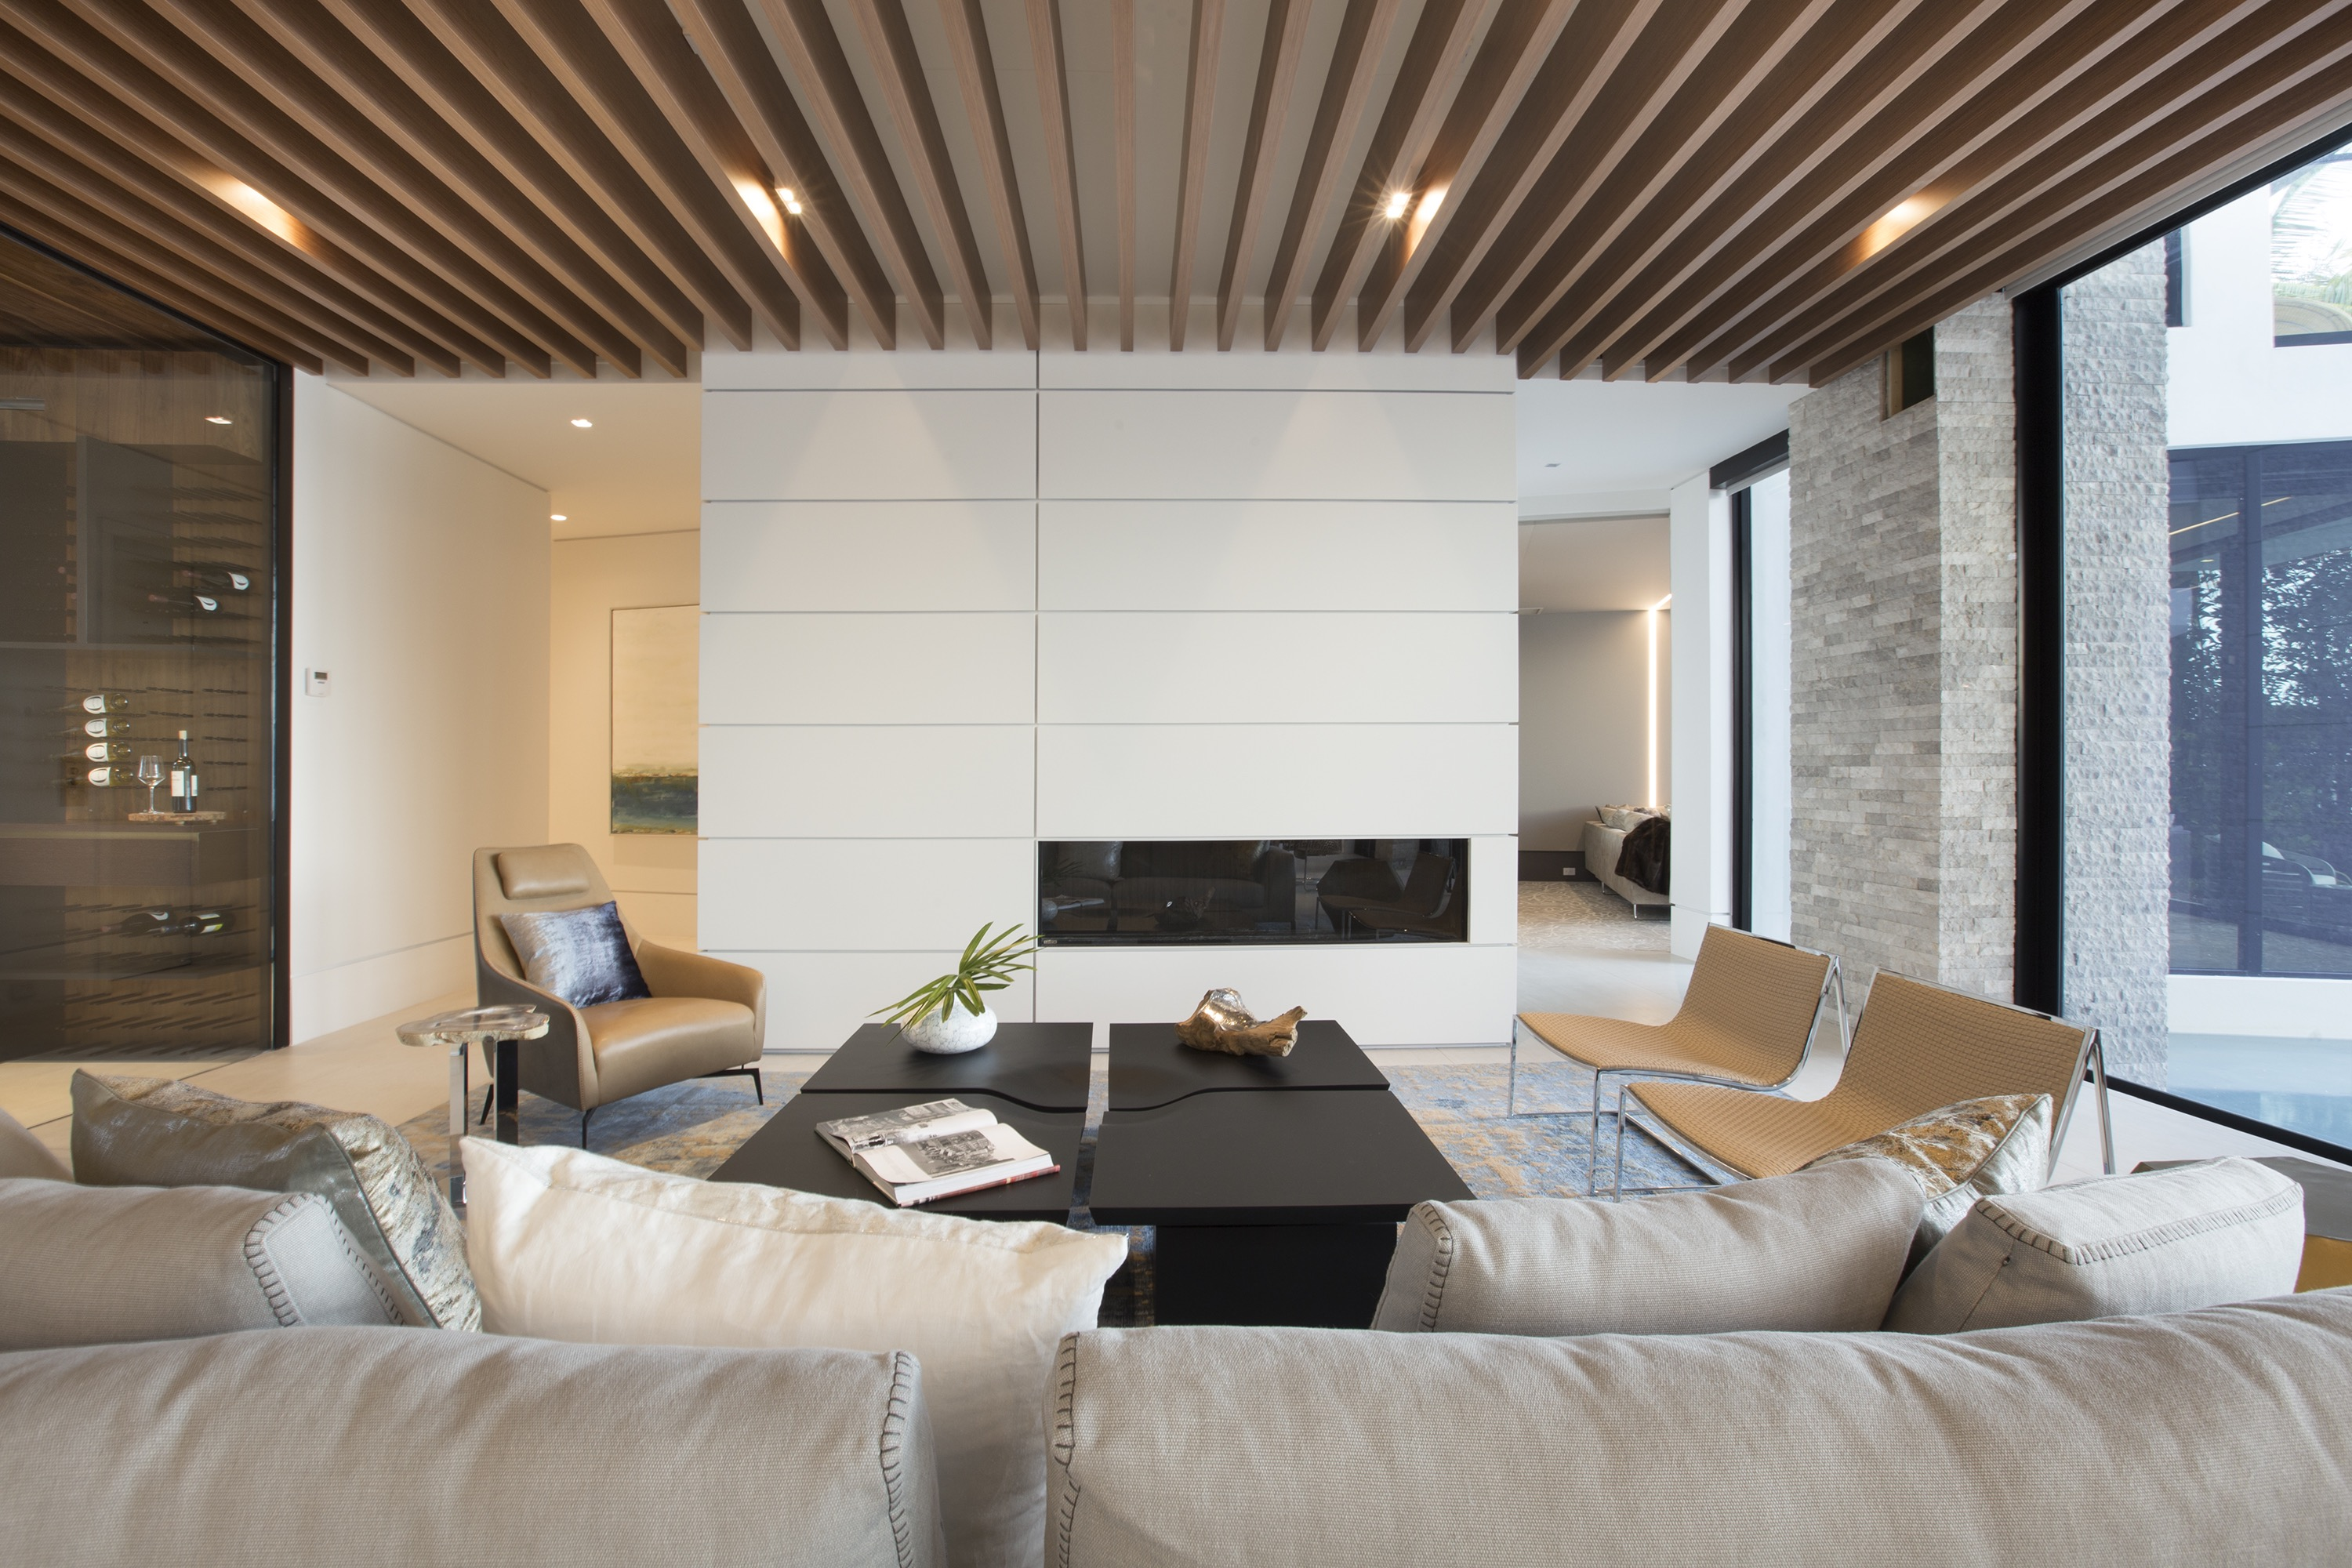 Trendy Futuristic Contemporary Living Room (Image 31 of 31)